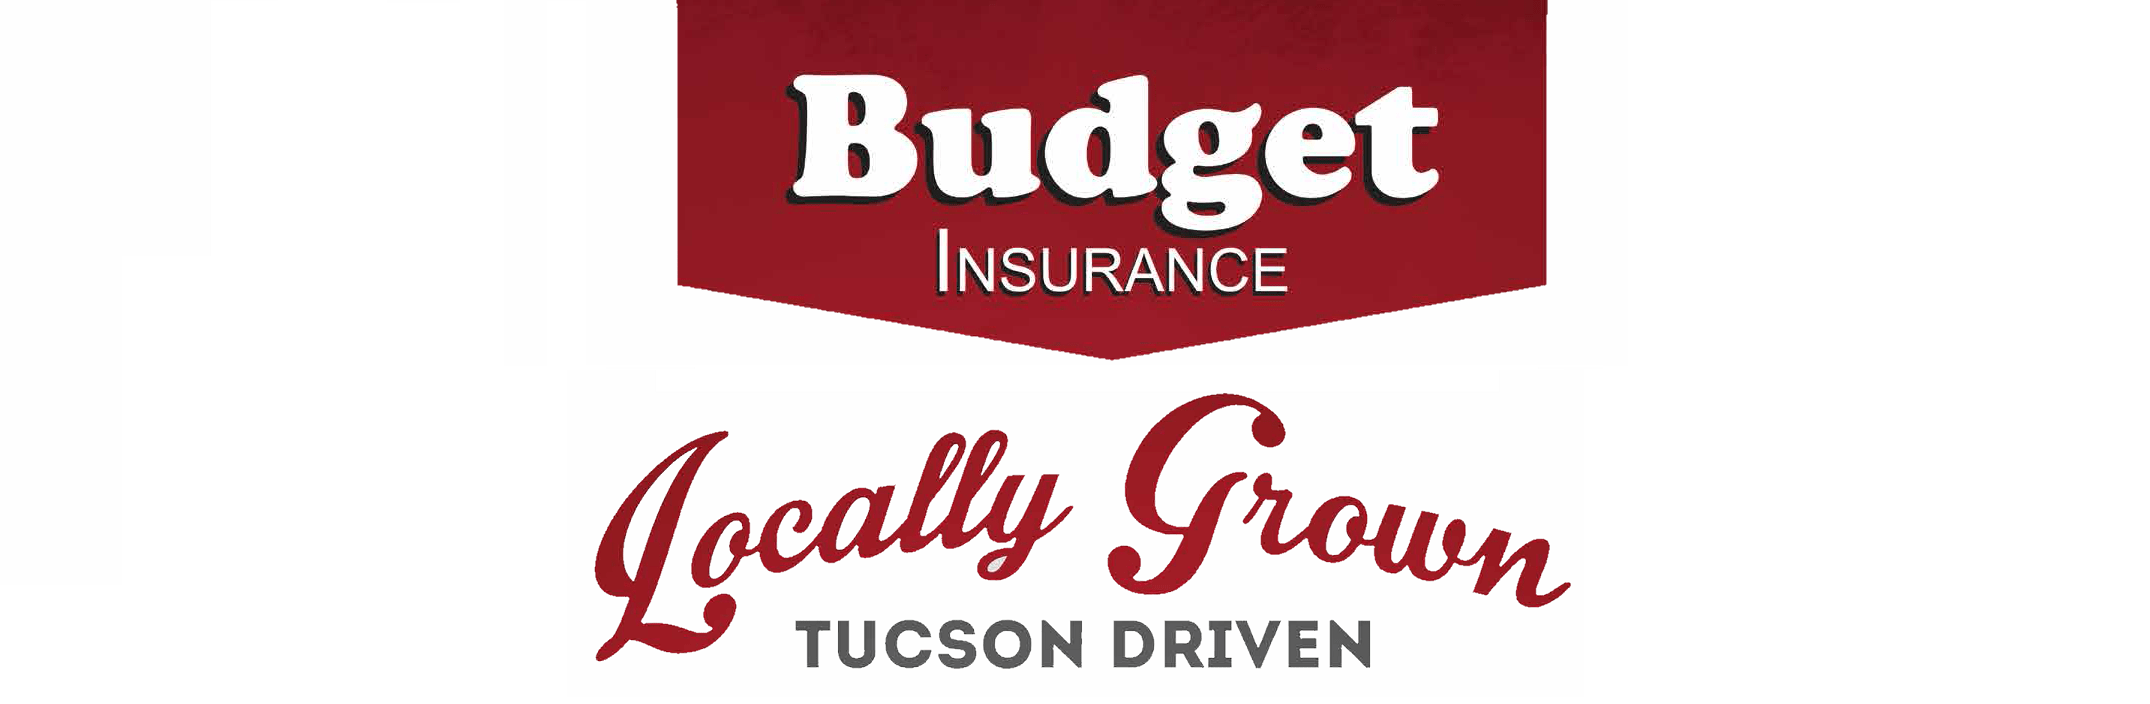 Budget Car Insurance Quote